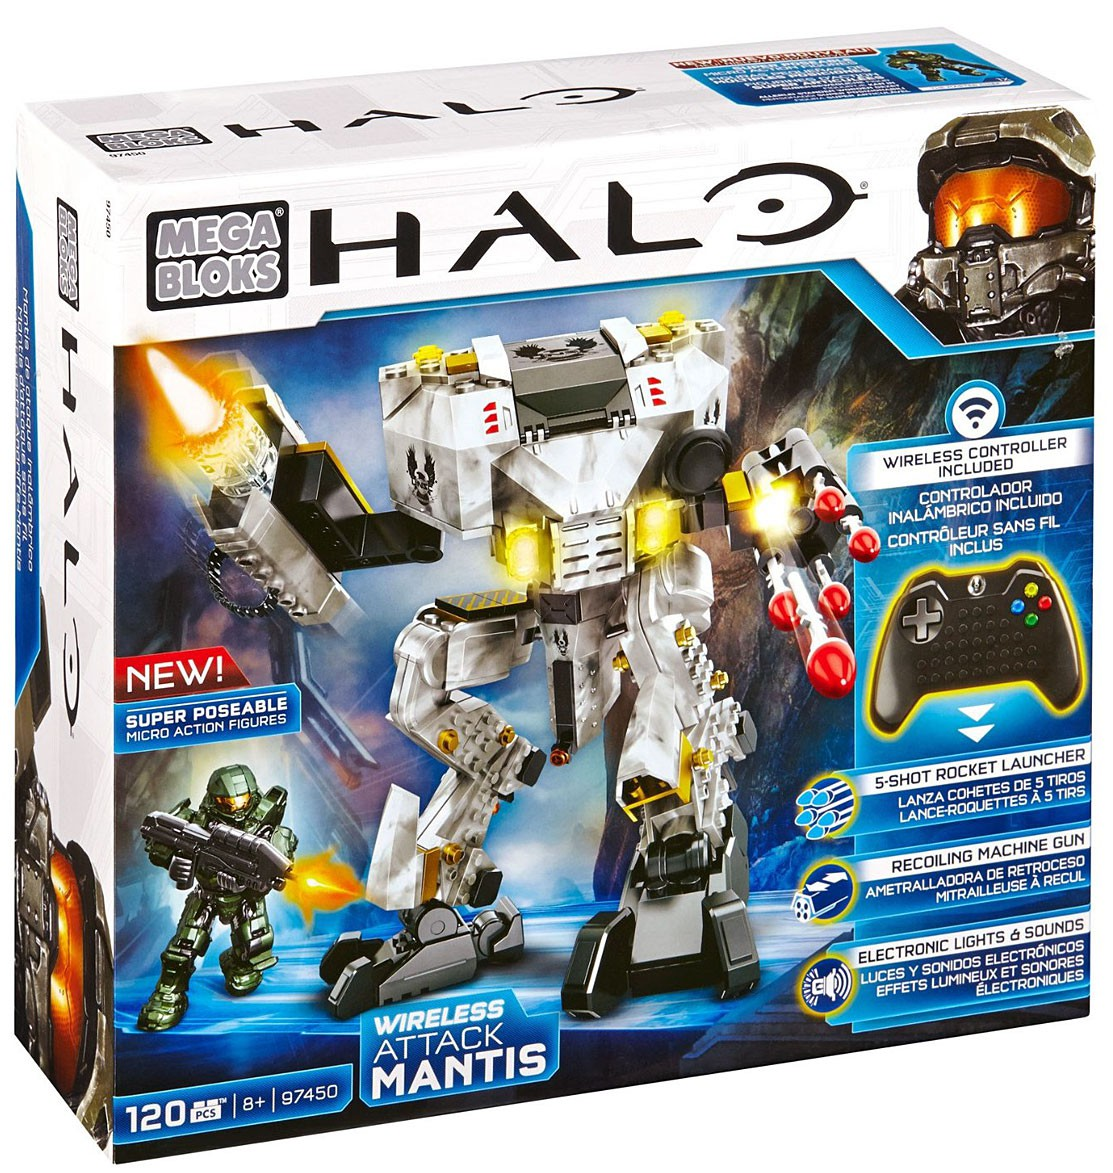 Mega Bloks Halo Wireless Attack Mantis Multi-Colored